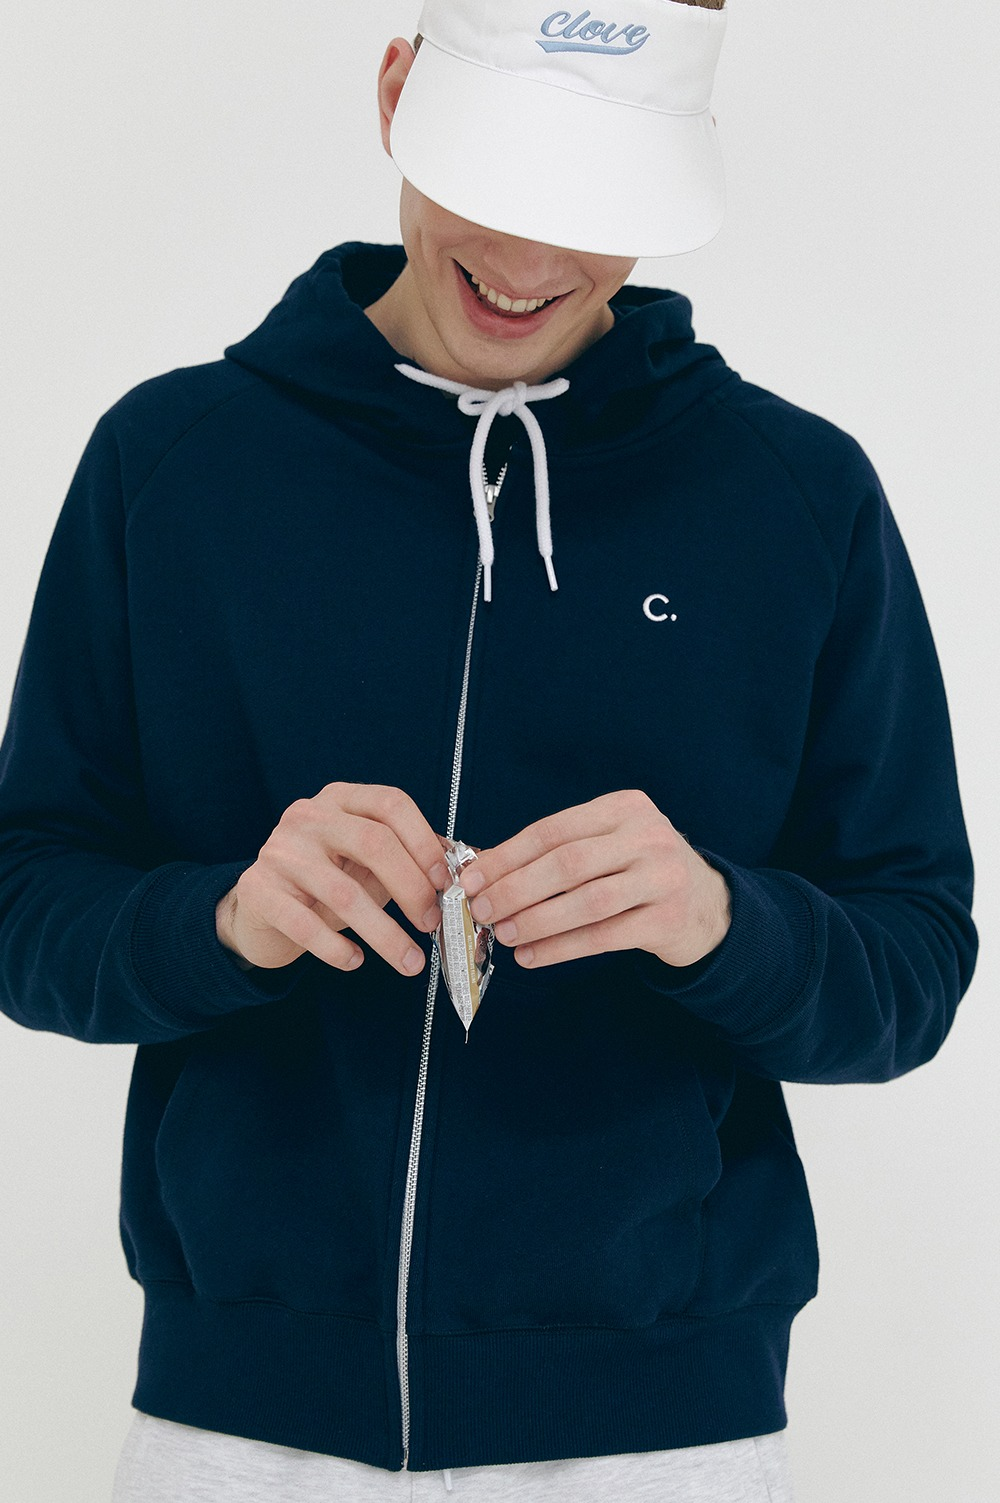 clove - [5/28(금) 예약배송][SS21 clove] Active Hoody Zip-up Dark Navy